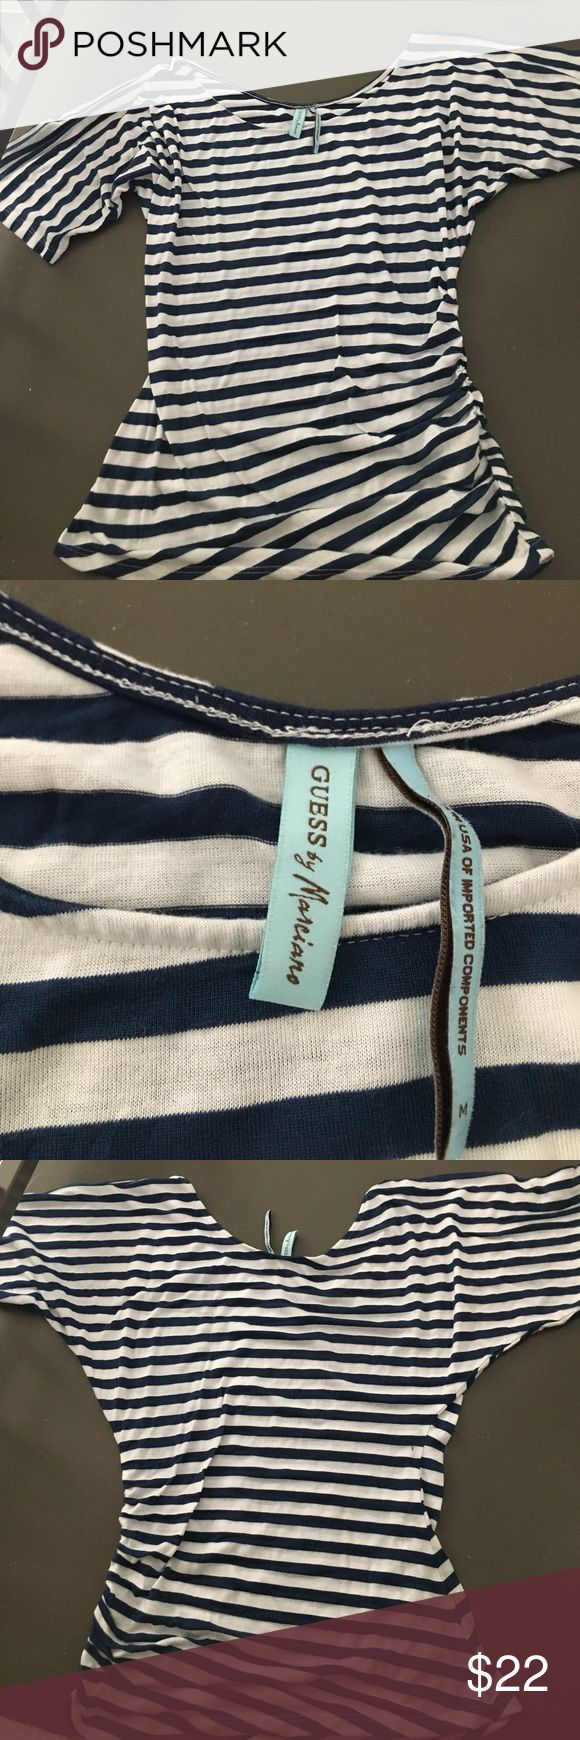 Guess Marciano Striped Tee Guess Marciano Striped Tee. Blue and white. Loose fit on top and snug fit in waist area. Perfect for spring! This is Size M but I am a S and it fits nicely as well. Guess by Marciano Tops Tees - Short Sleeve